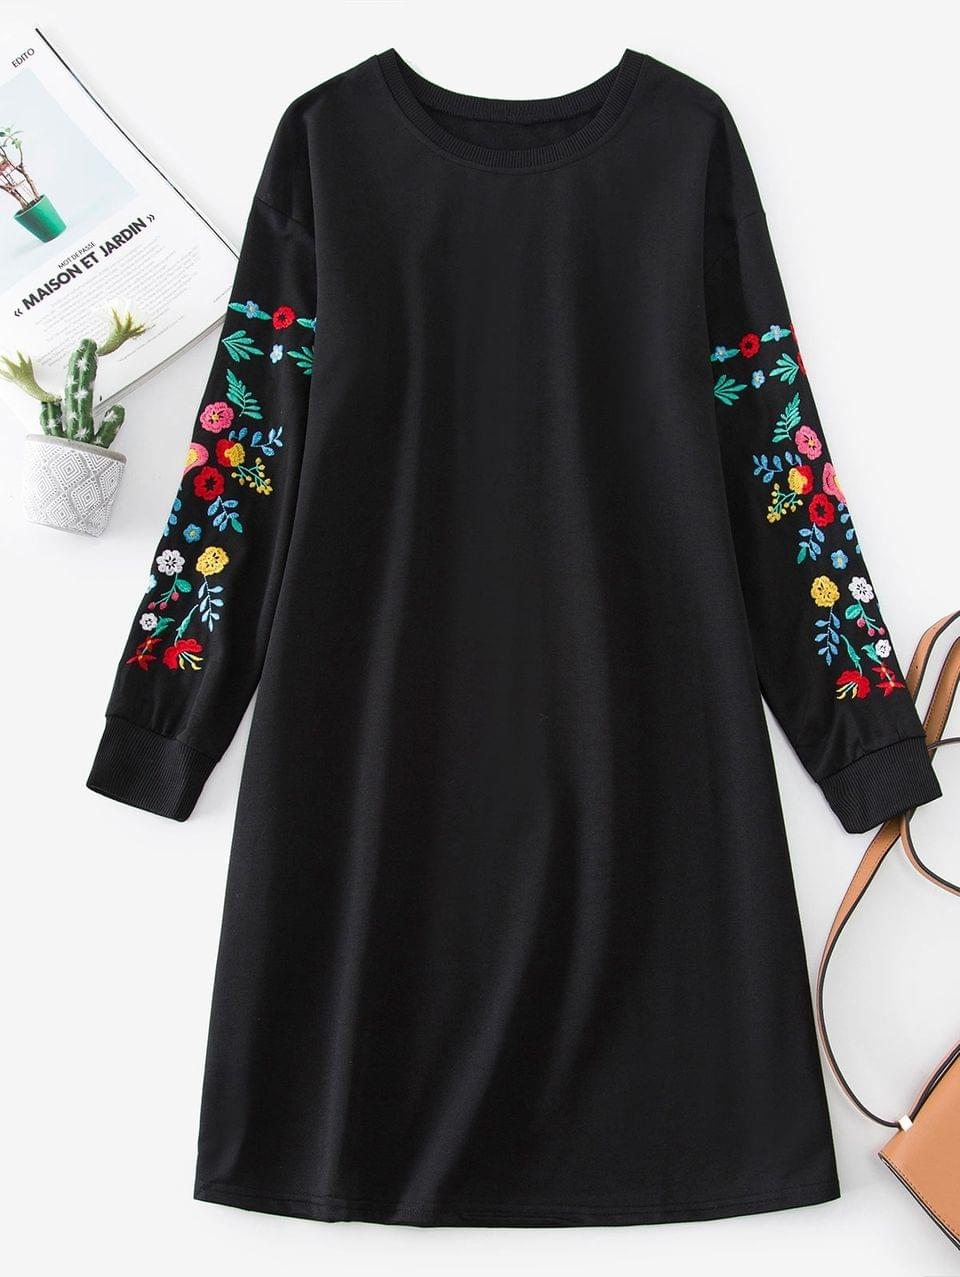 Women's Flower Embroidered Drop Shoulder Sweatshirt Dress - Black L